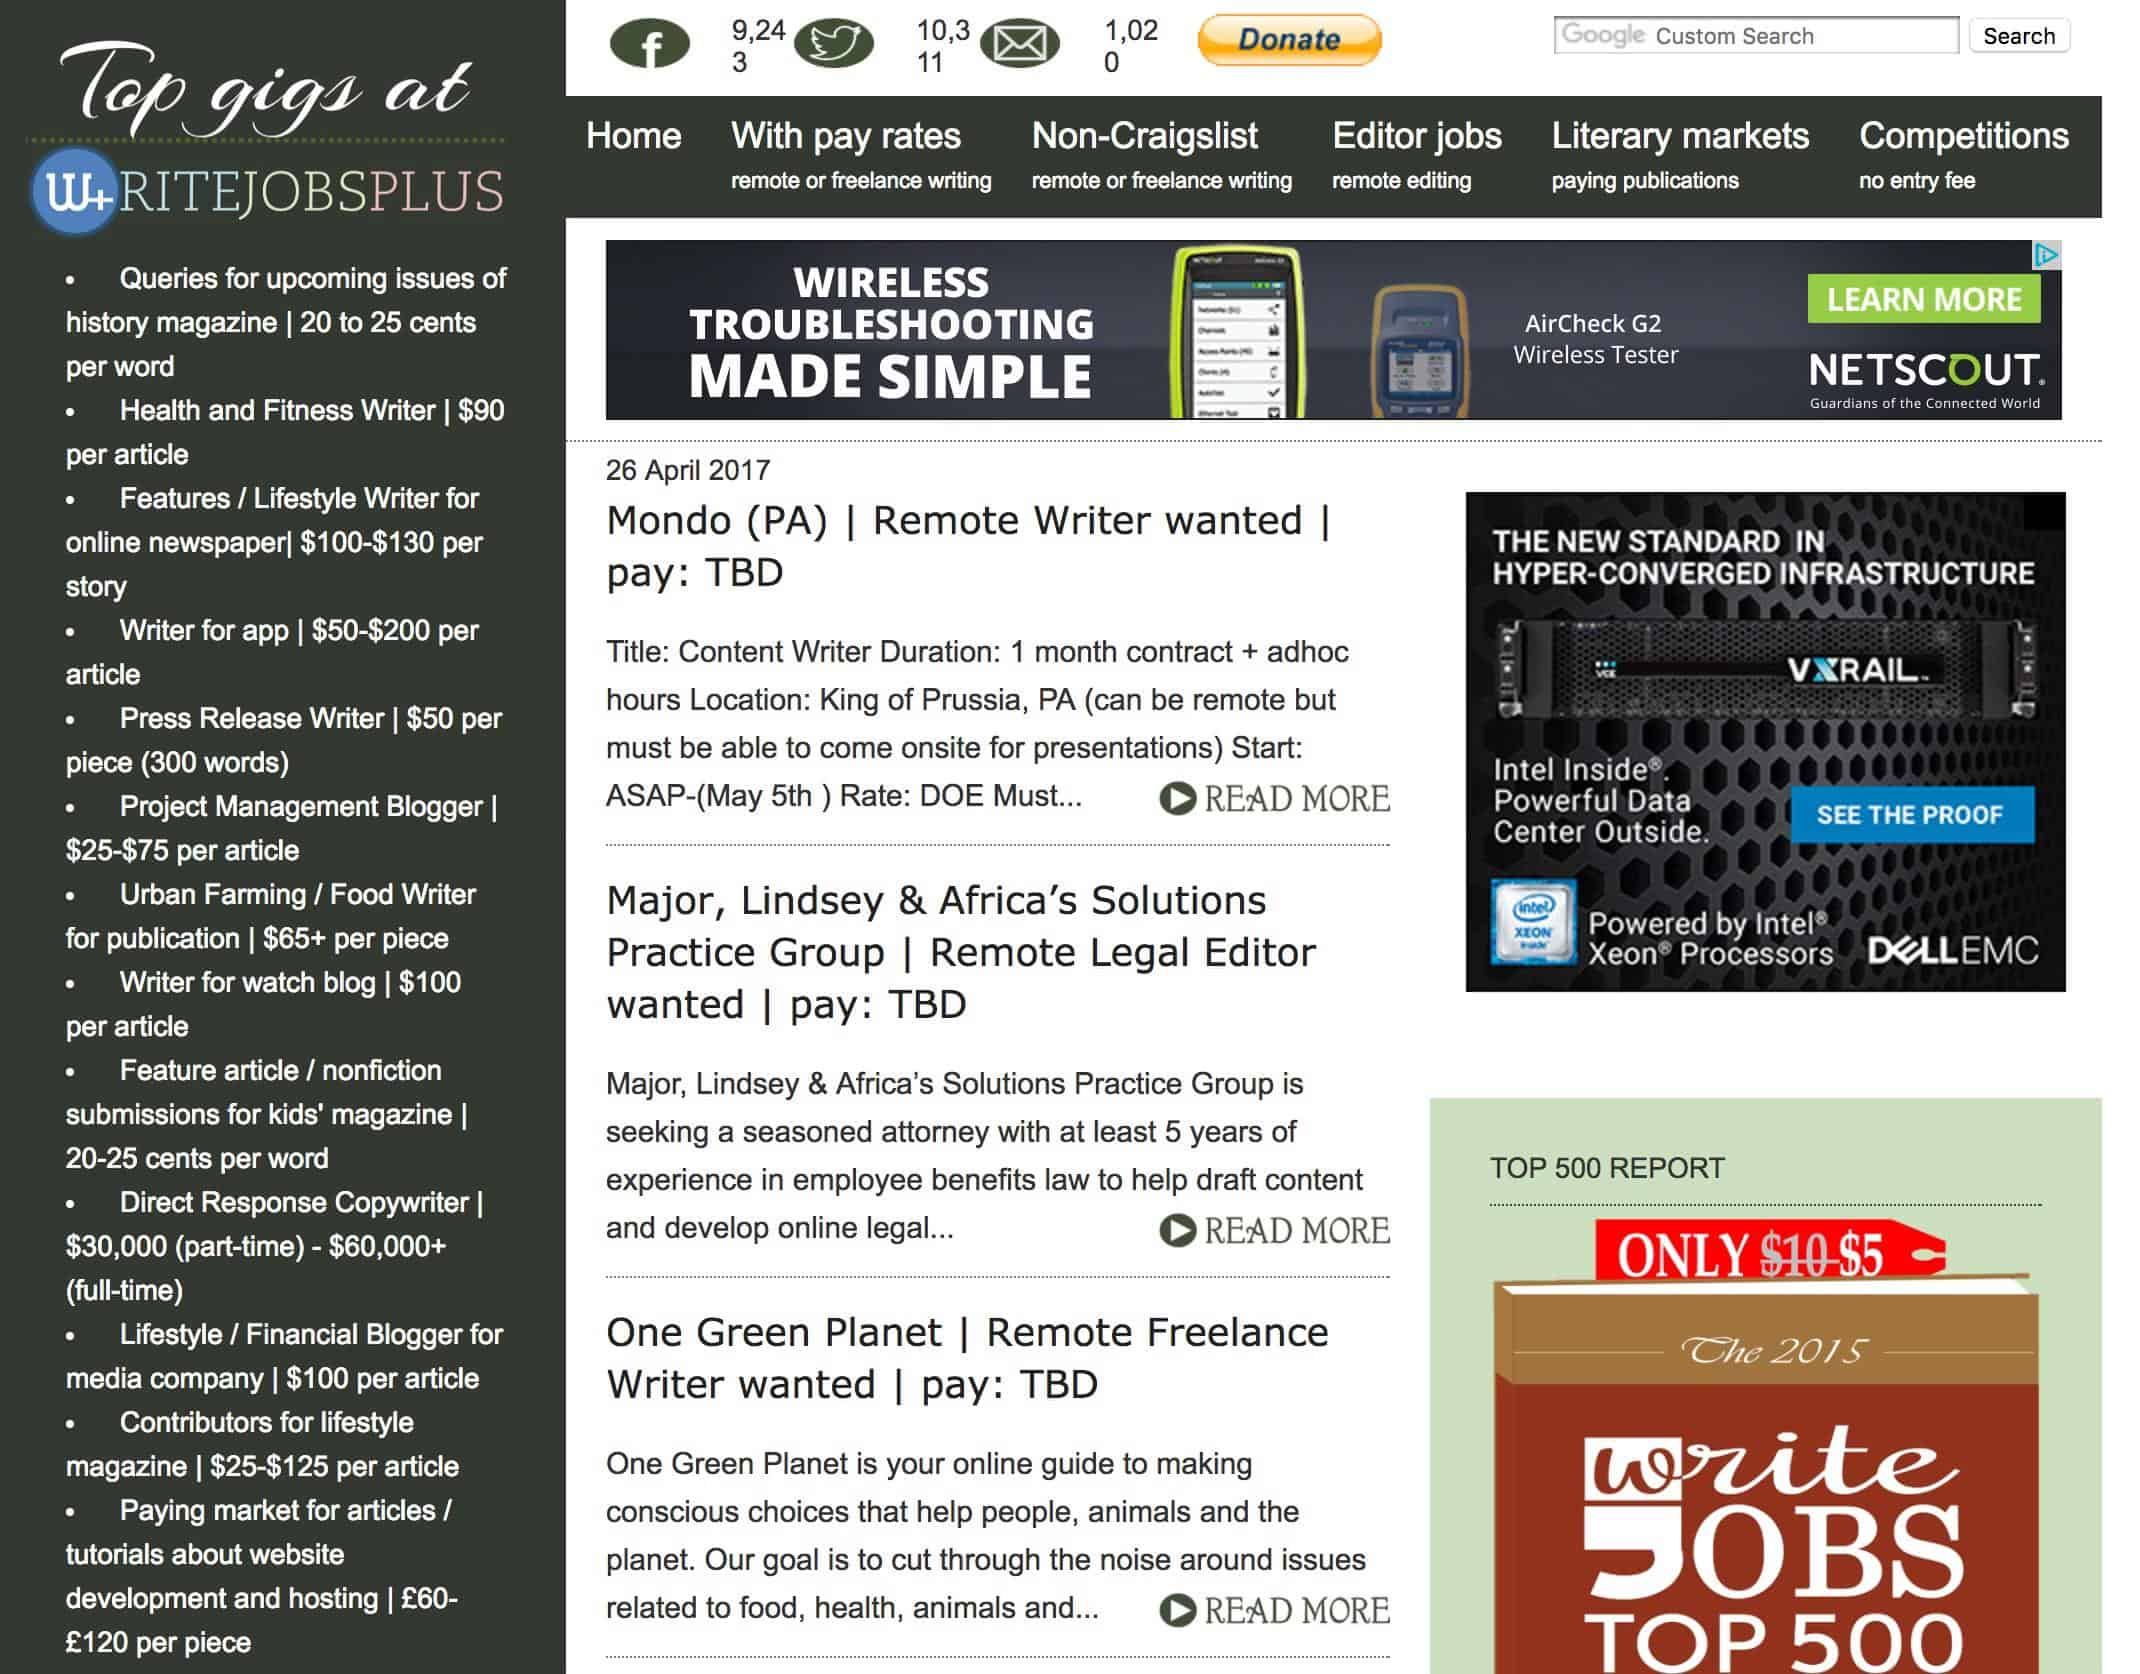 WriteJobs Content Writing